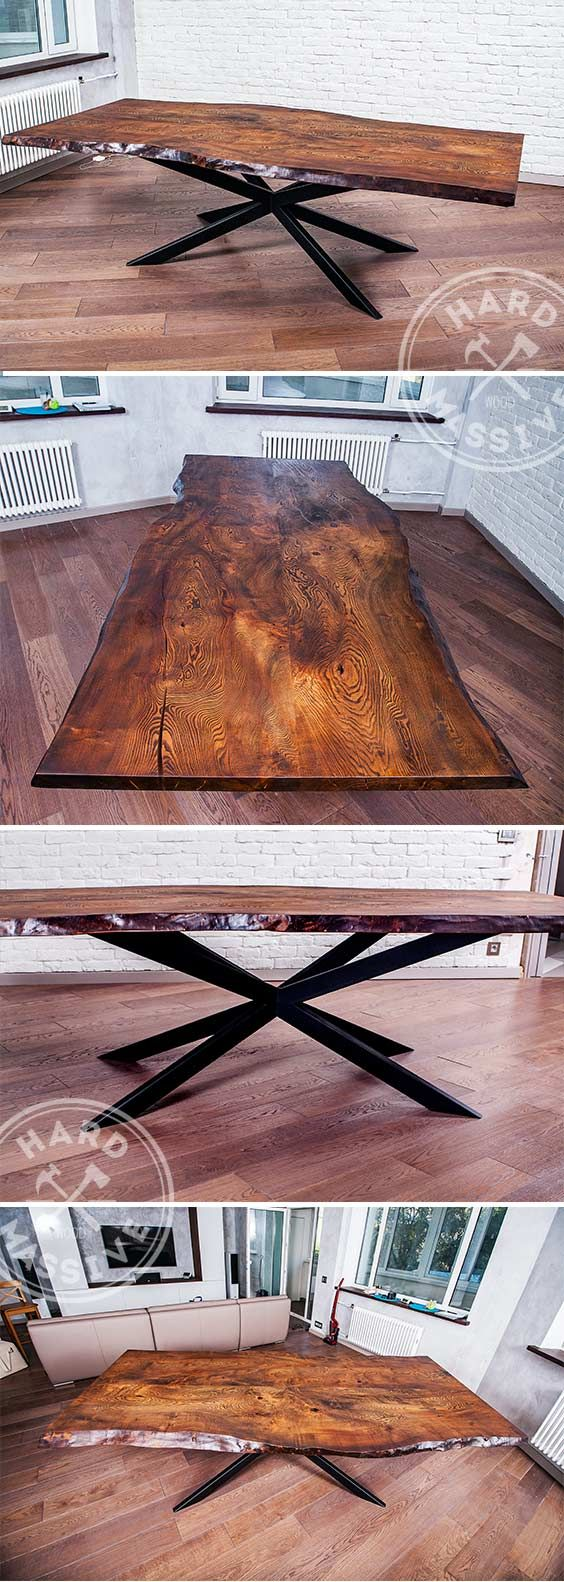 Table in the Modern Rustic style. Large dining table handmade from slab wood Chinar with a live edge. Age of the tree - more than 100 years! The thickness of the countertops - 7 cm. Base -. Metal | Стол в стиле Современный Рустик. Большой обеденный стол ручной работы из массива дерева Чинар с живым краем. Возраст дерева более 100 лет! Толщина столешницы - 7 см. Основание - металл. #modernrustic #diningwoodtable #largetable